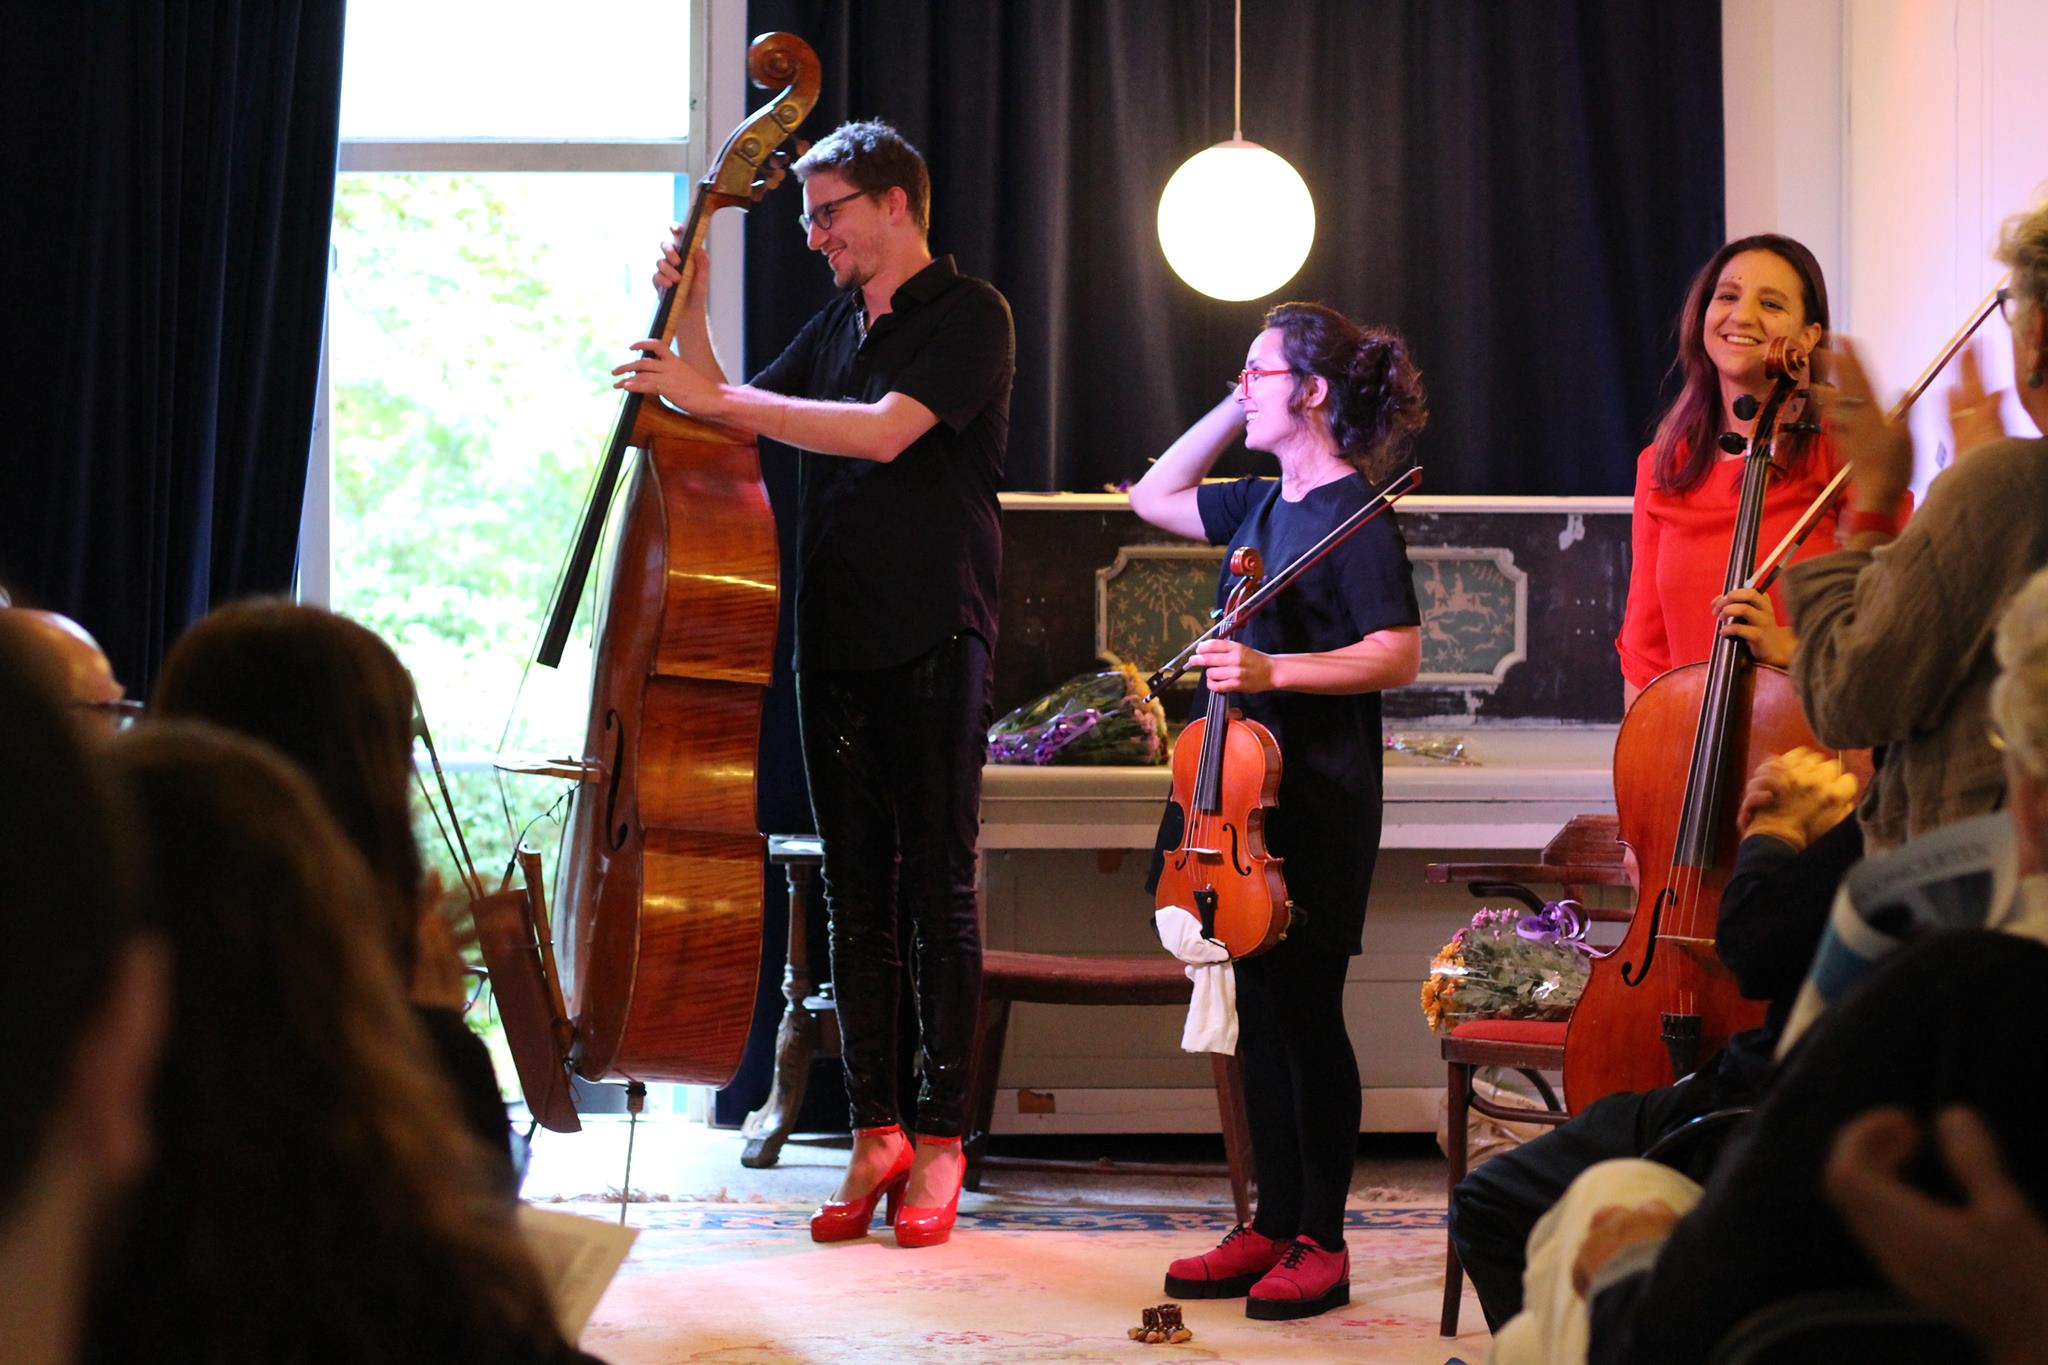 gibberish : Babel Project by Zvov Trio at Home of Art July 16